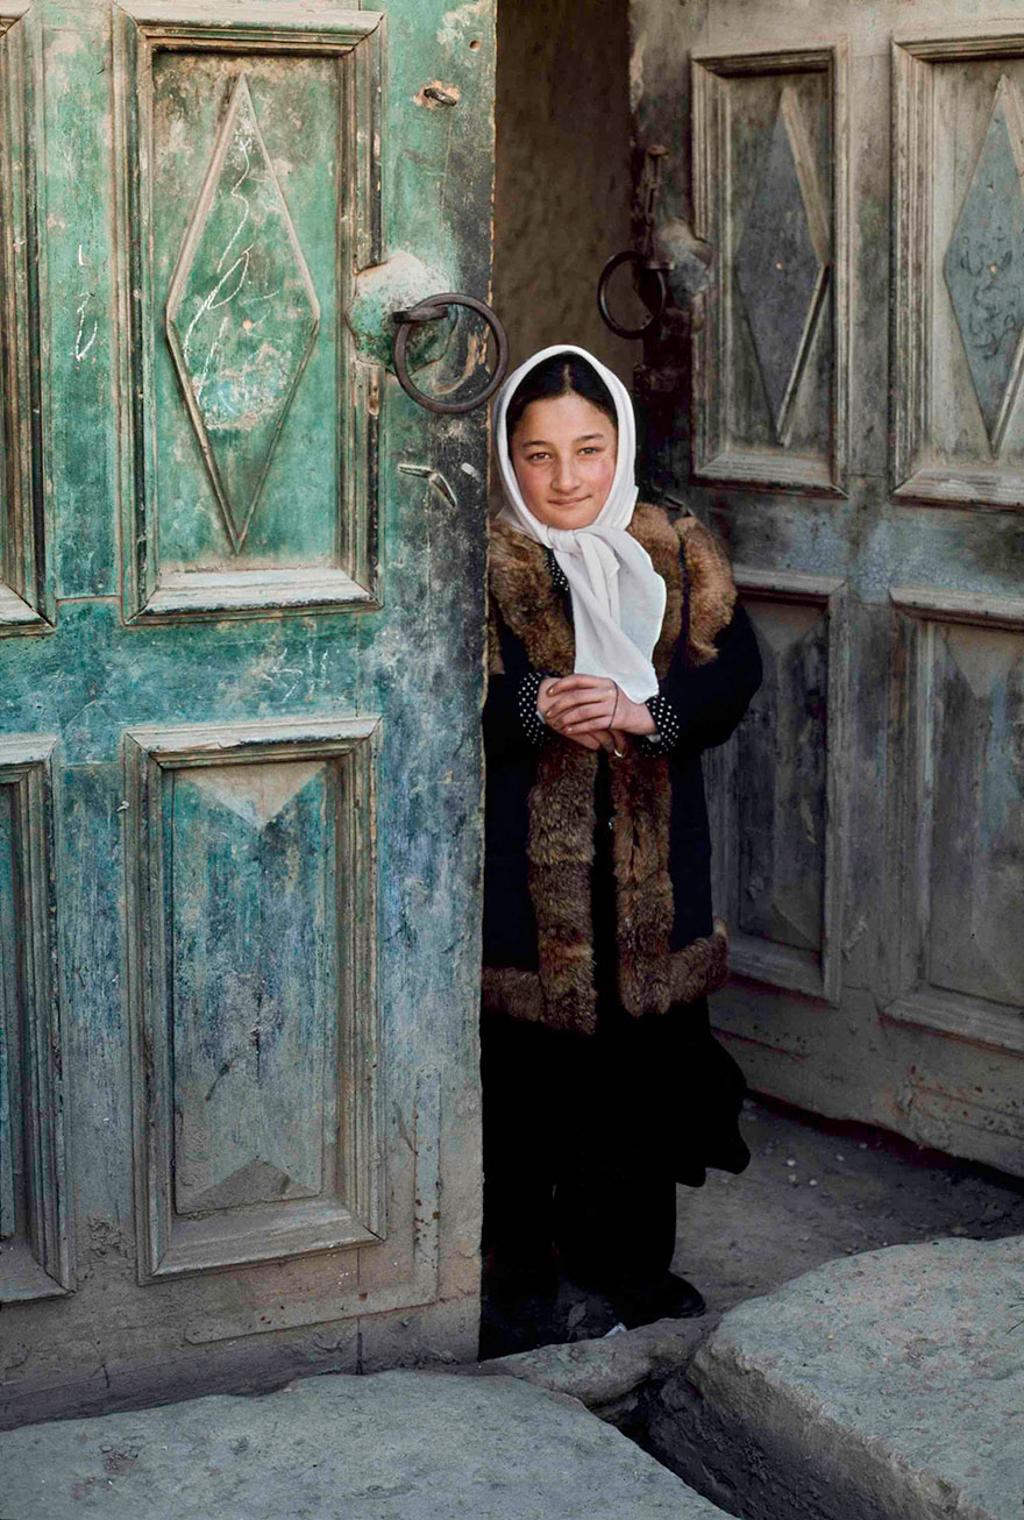 Afghanistan, 2003 - Photo : Steve McCurry